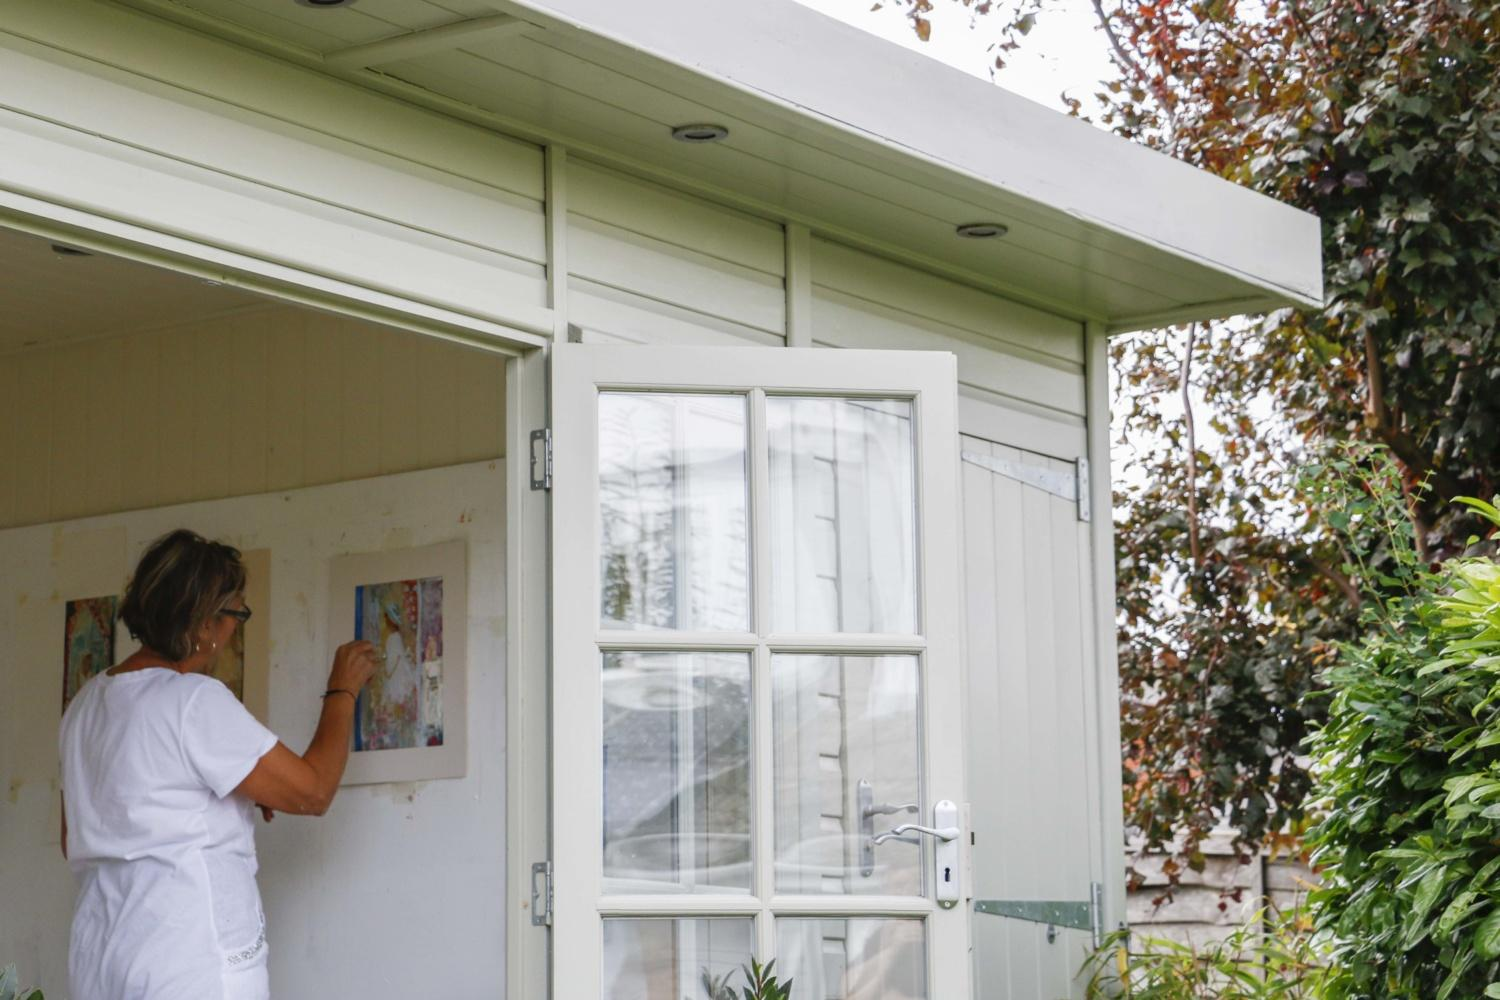 Sally-Anne uses her ShofficePlus as her artist's studio. Situated at the end of the garden, her retreat can be enjoyed by the whole family whilst she paints. Read her case study on Garden Escape by Malvern Garden Buildings.